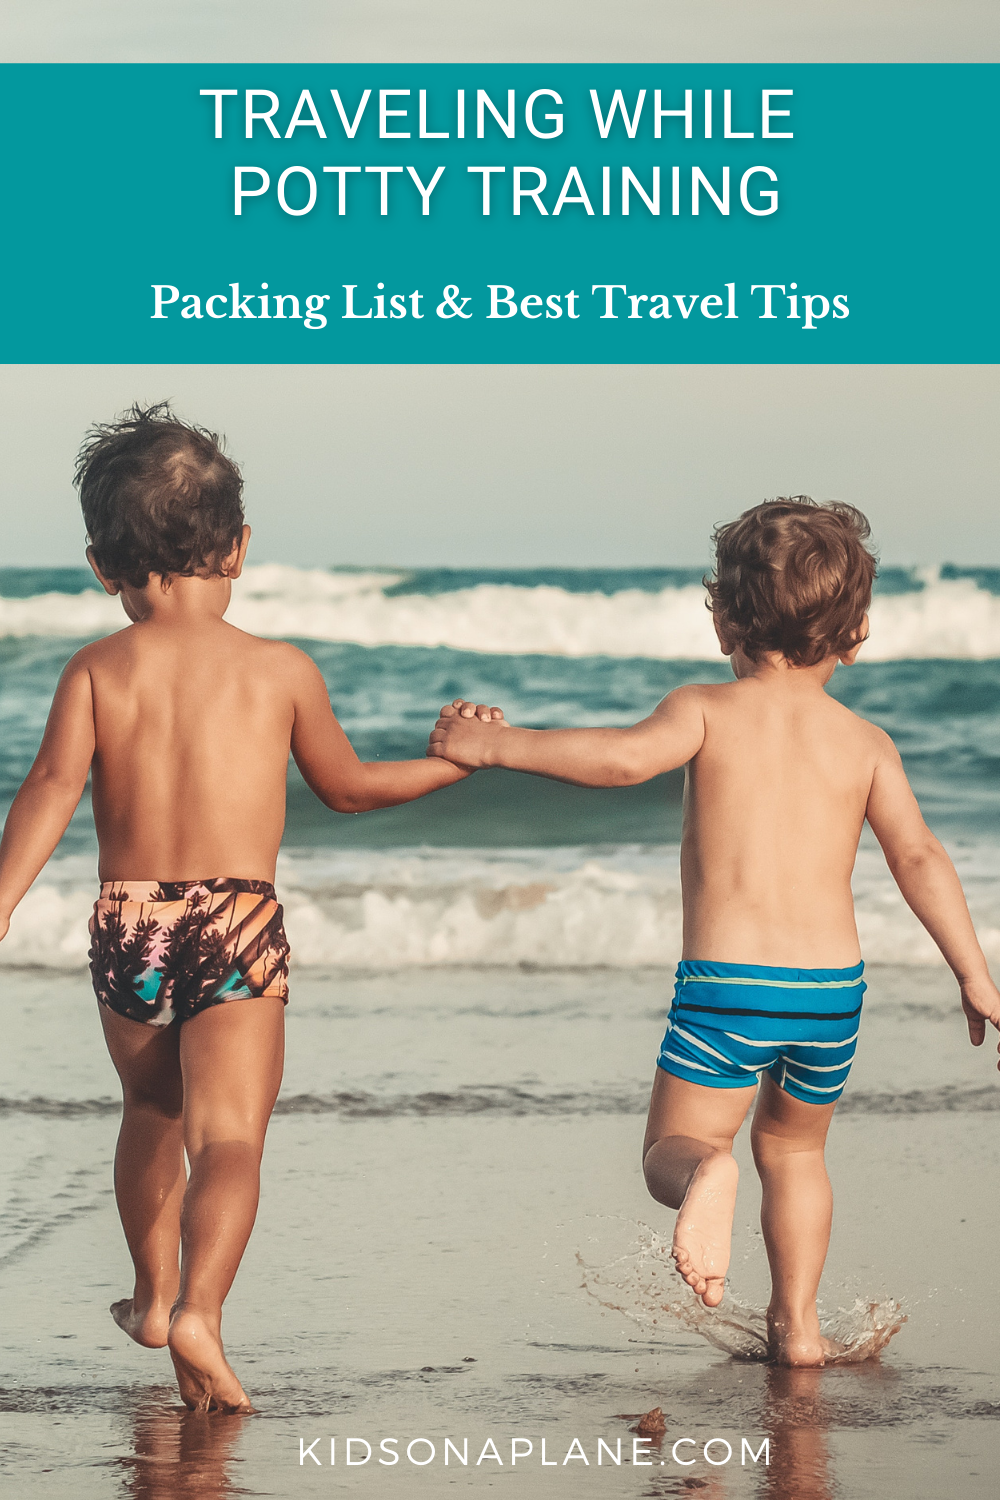 Potty Training Travel Tips and a Packing List for Parents with Toddlers